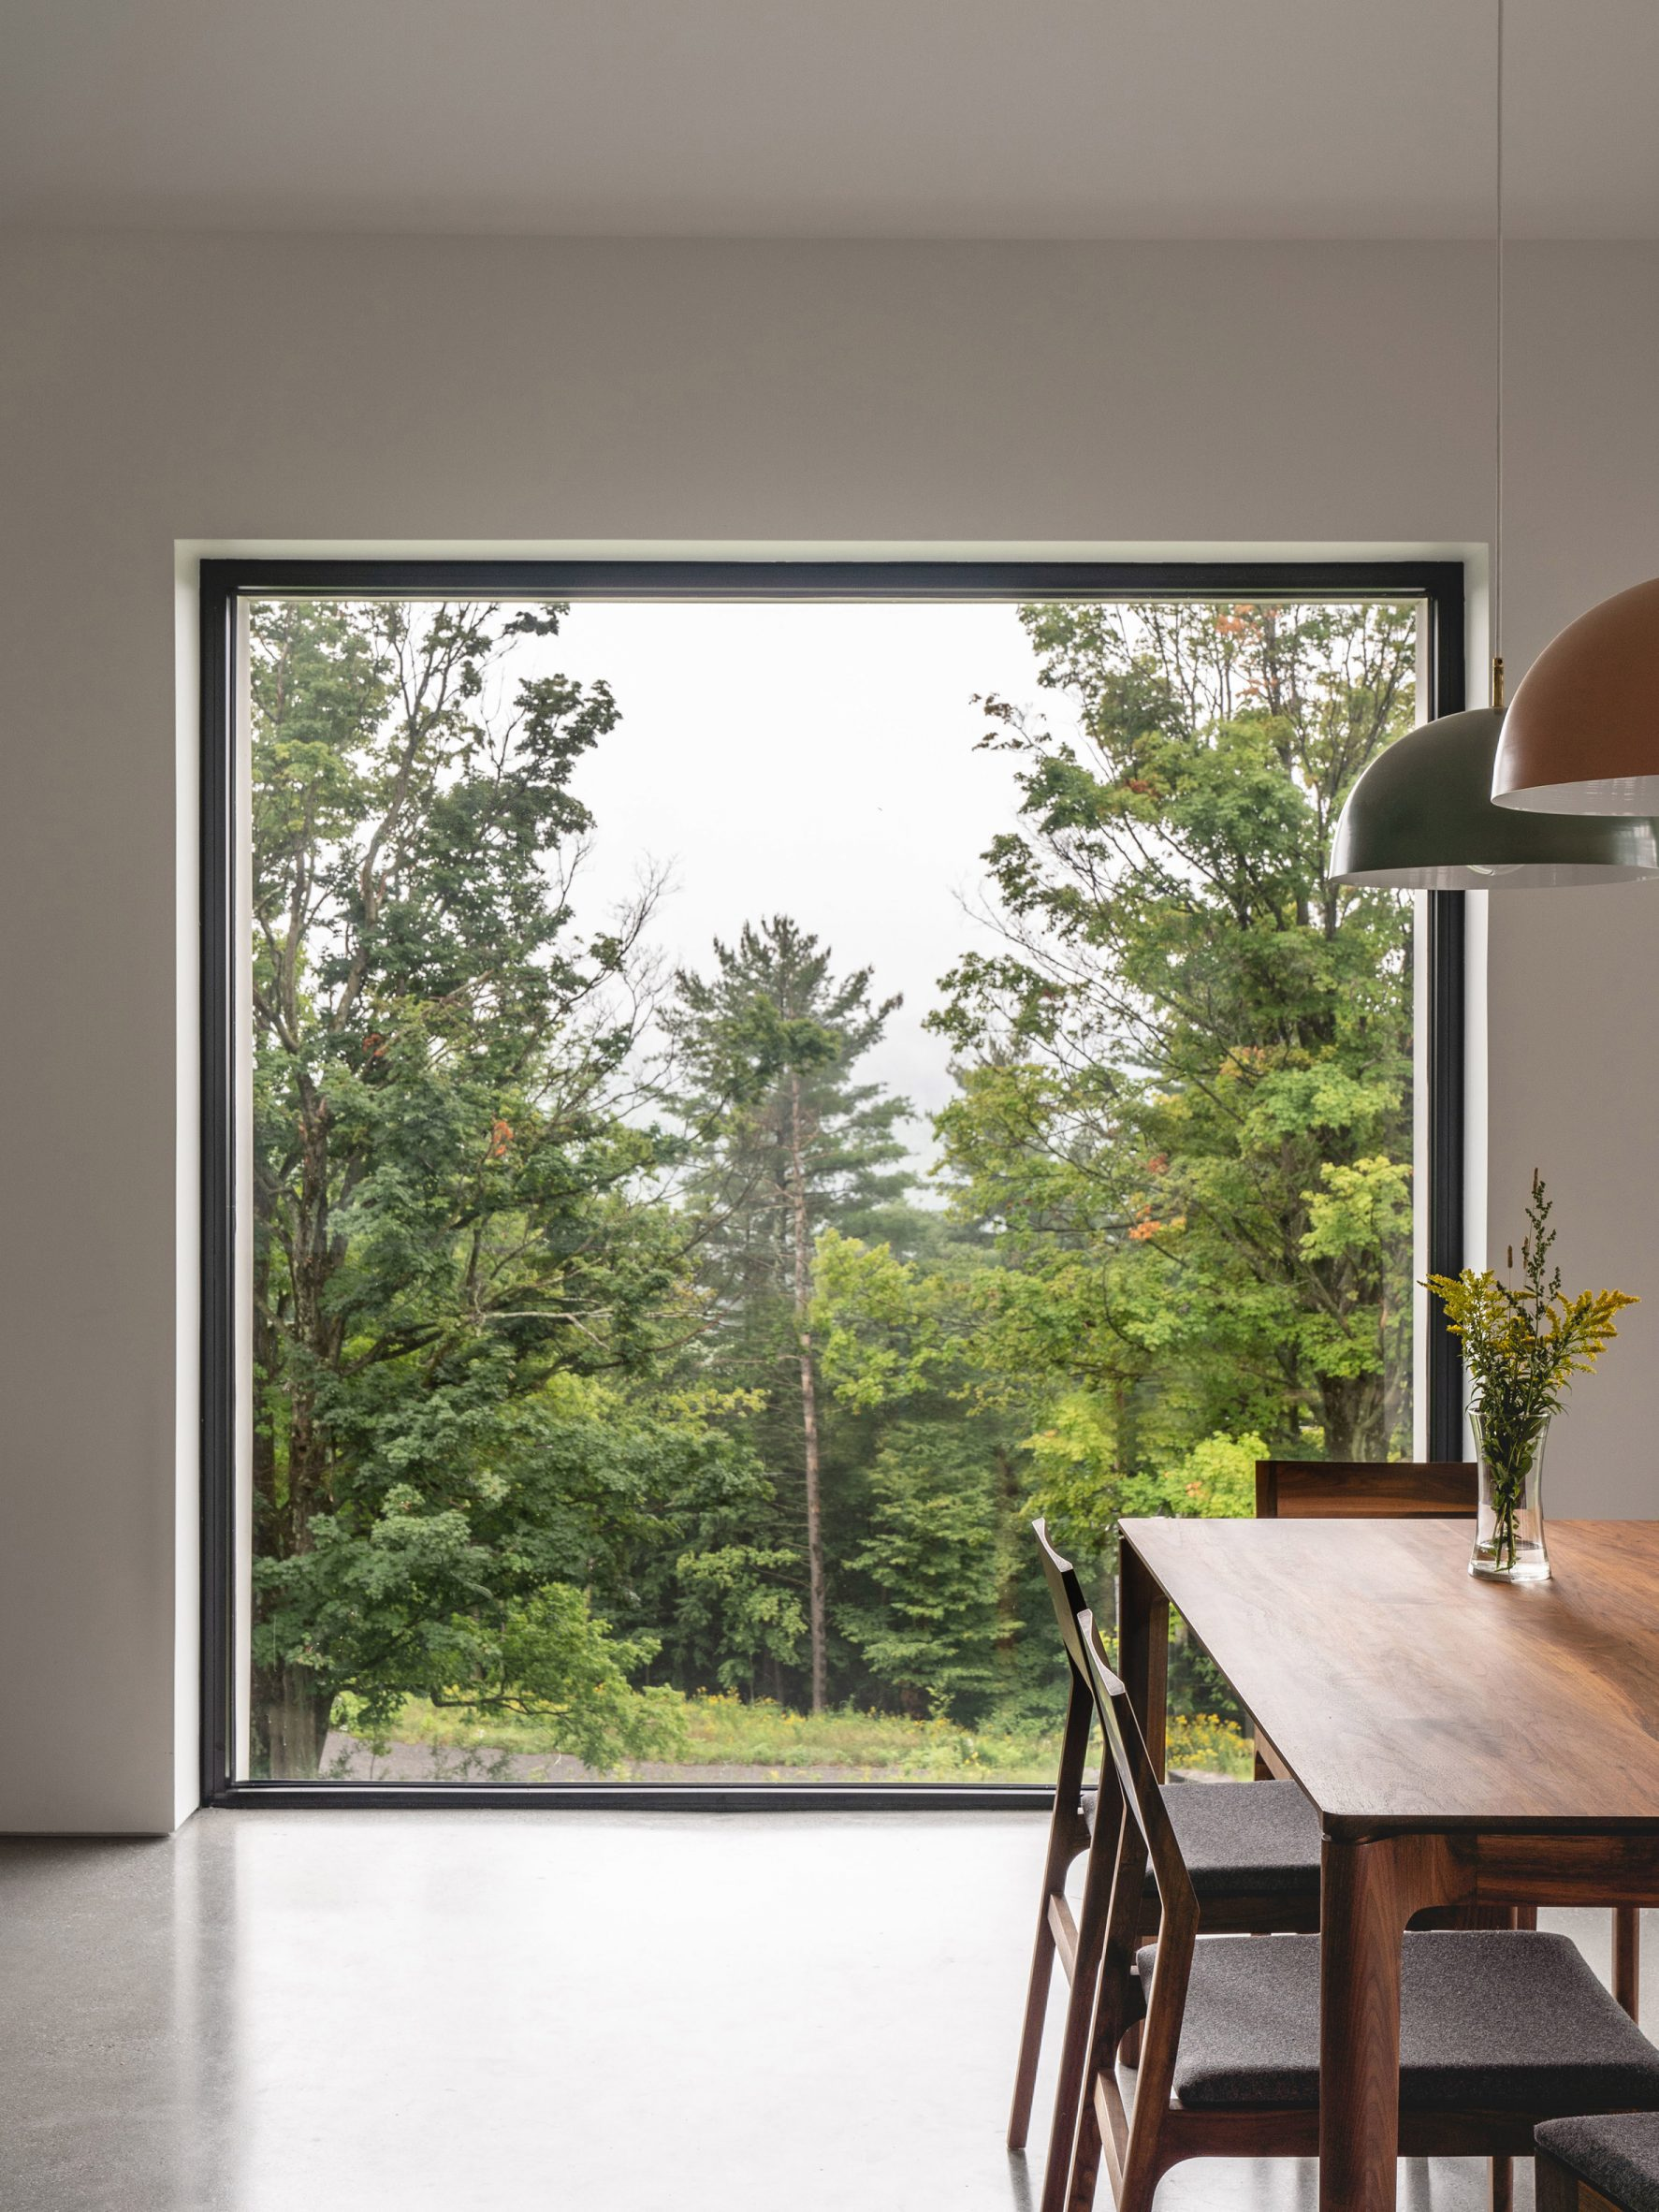 Forest view framed through dining room window